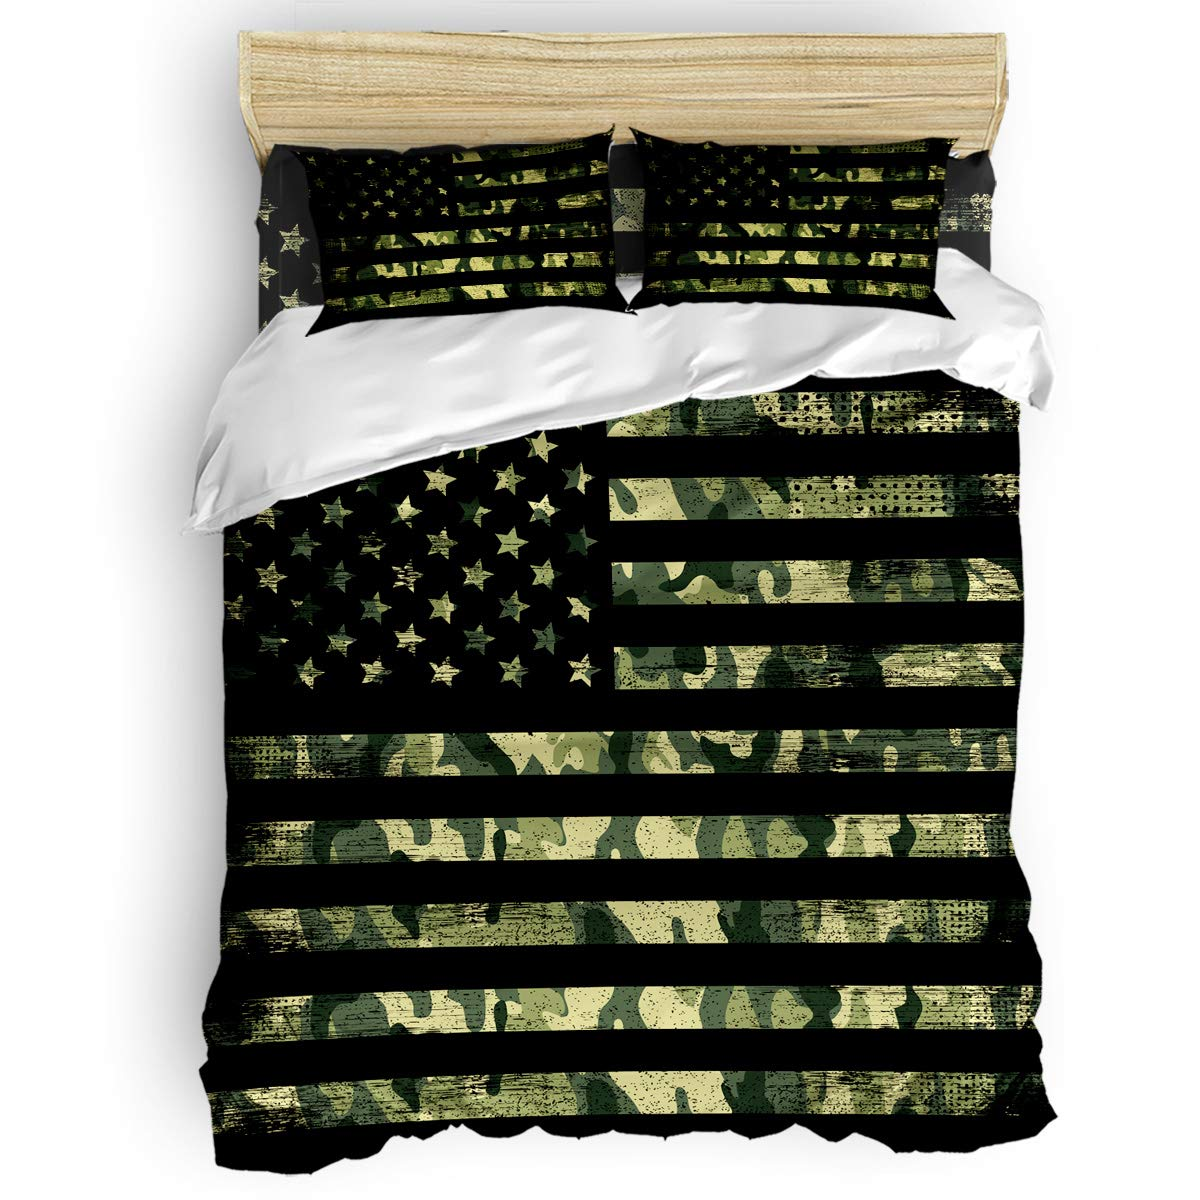 LOVE HOME DAY Camouflage American Flag Bedding Sets Full Size Ultra Soft 4 Pieces Duvet Cover Set with Bed Decorative 2 Pillow Shams Bedspread Bed Sheets Patriotic Stars and Stripes